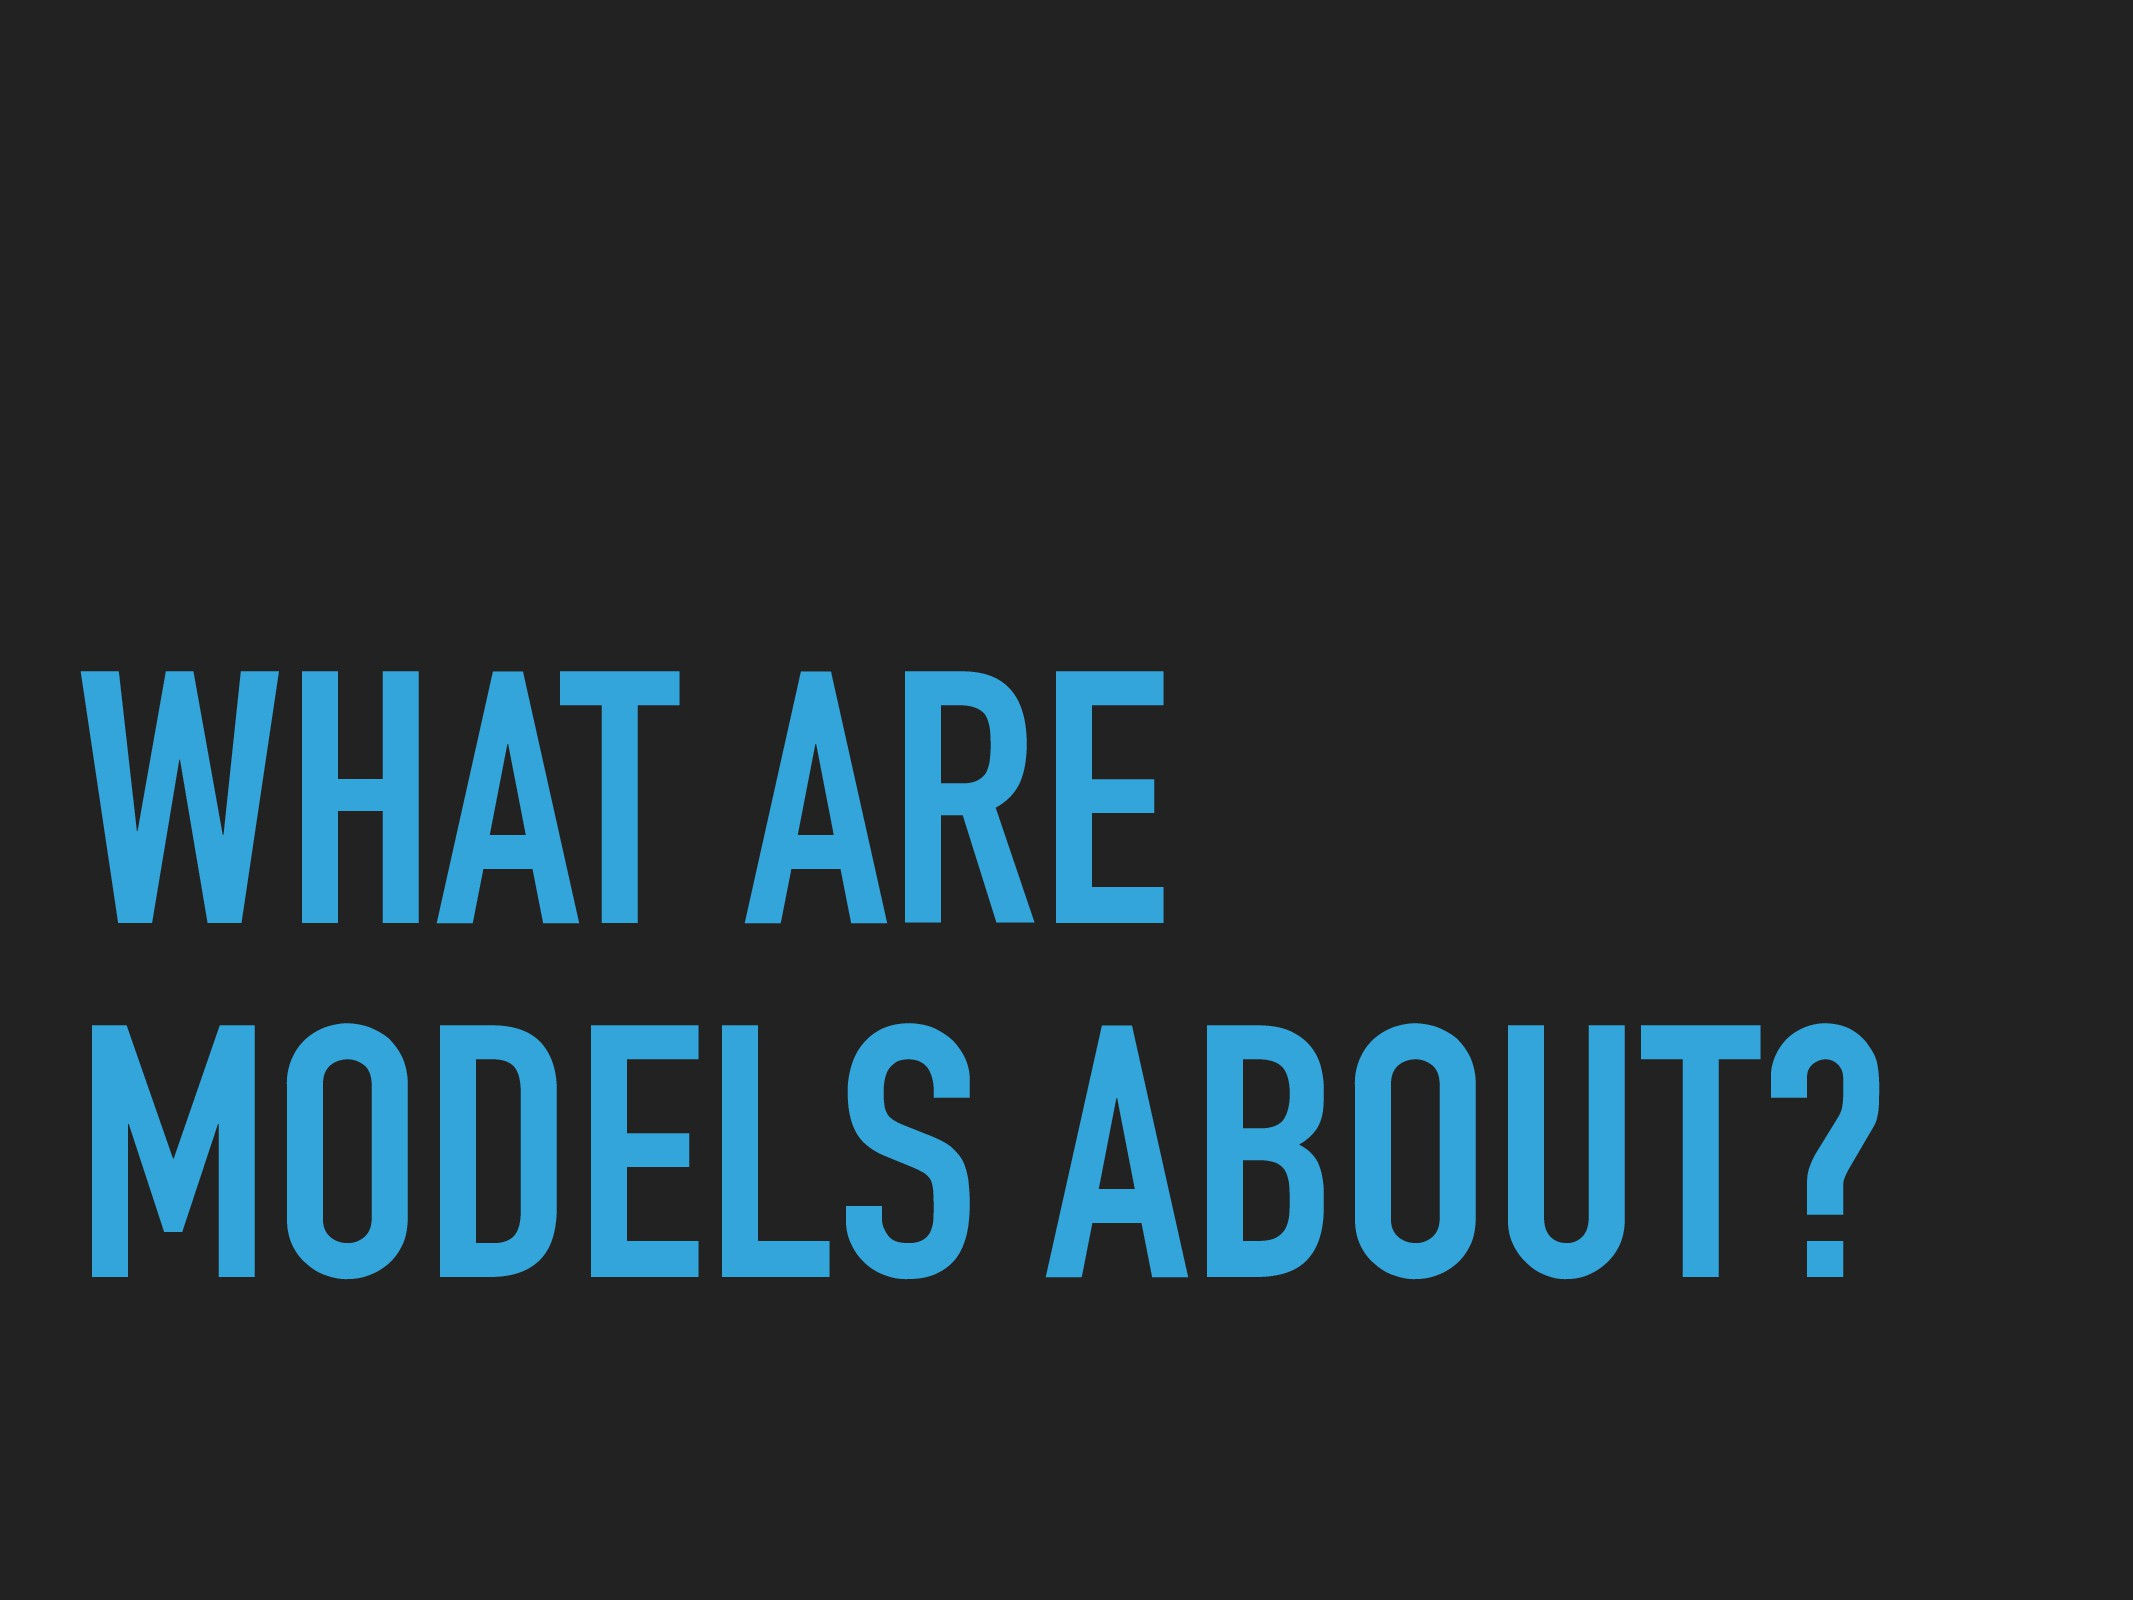 WHAT ARE MODELS ABOUT?